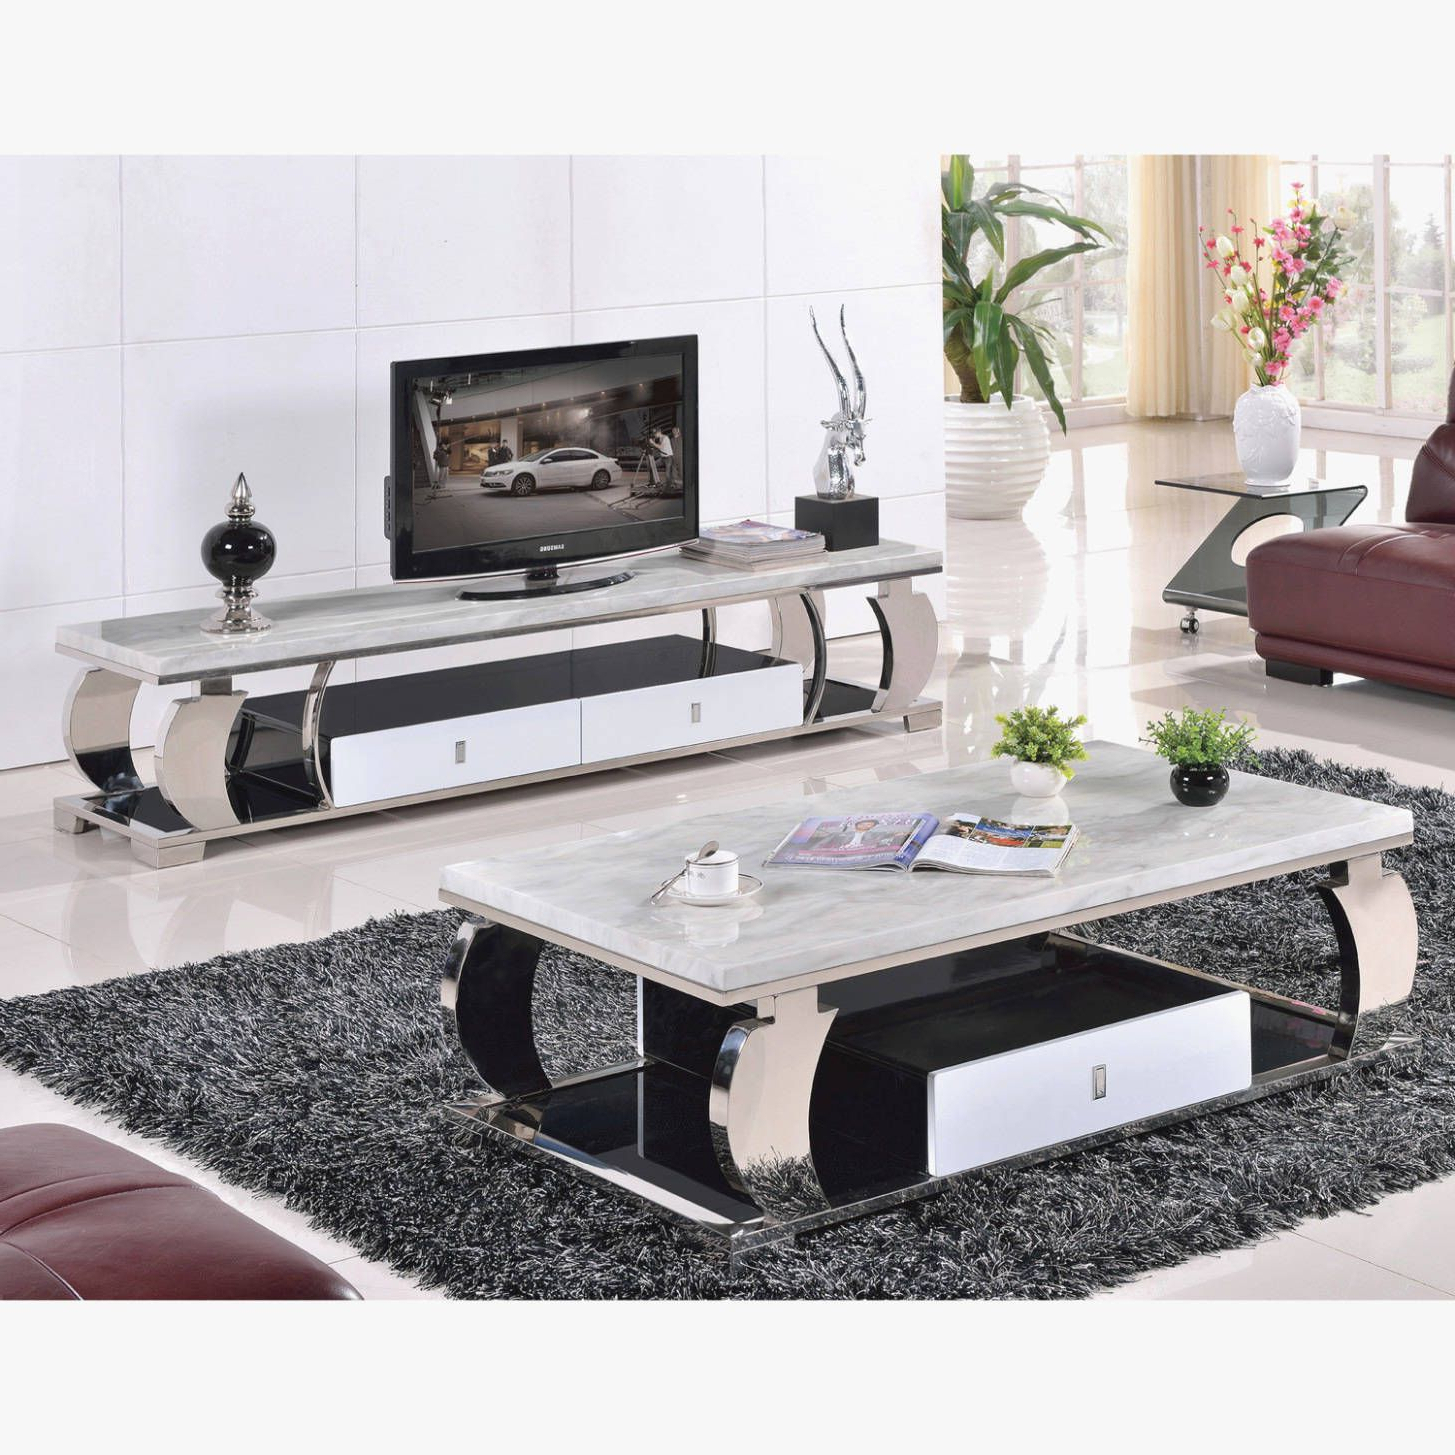 Current Coffee Tables And Tv Stands Matching Pertaining To More 6 Luxurius Matching Tv Stand And Coffee Table Matching Tv Stand (View 6 of 20)